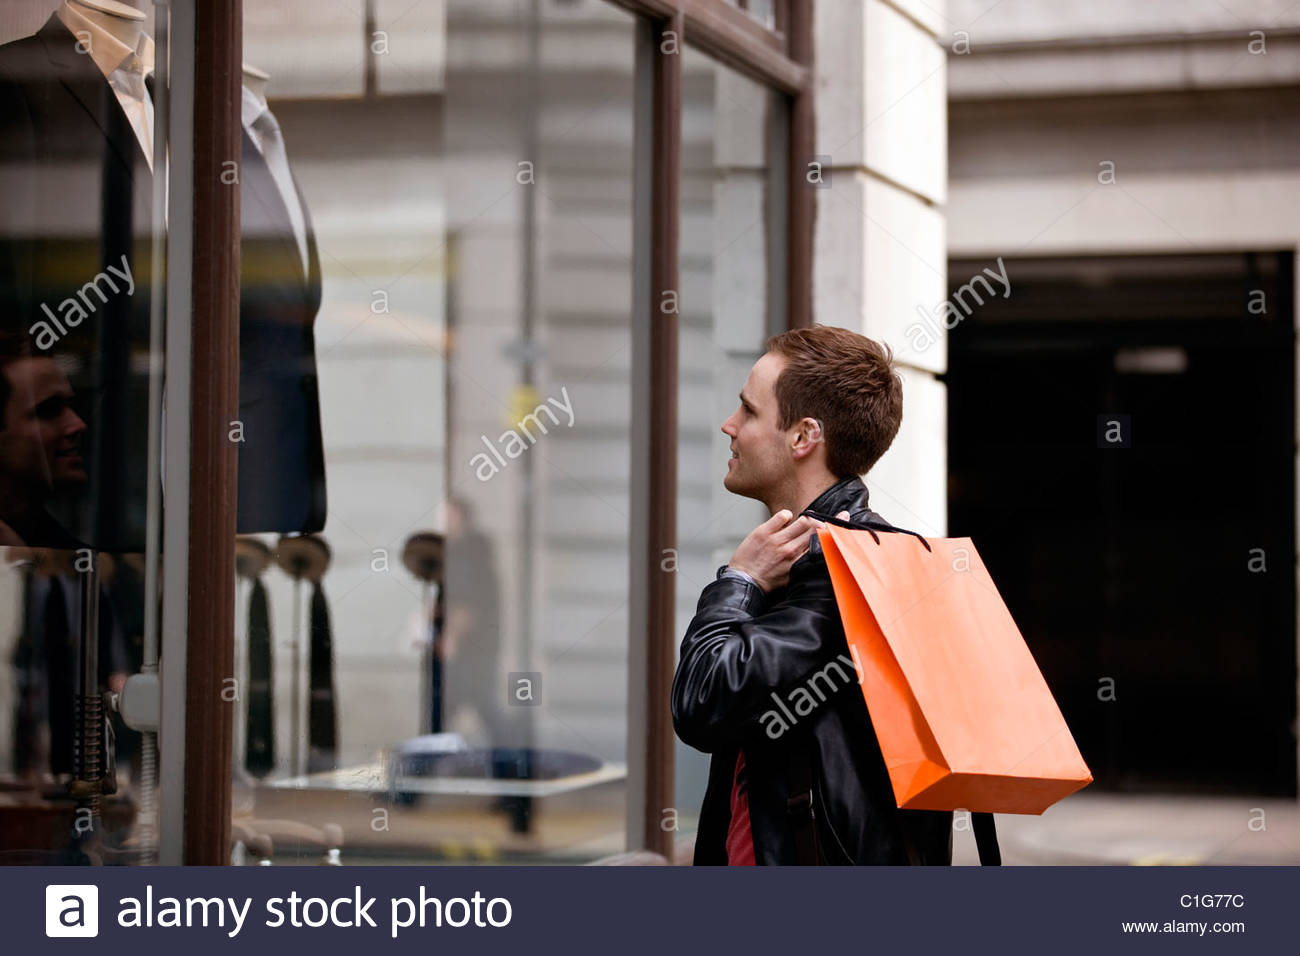 A young man looking in a shop window - Stock Image